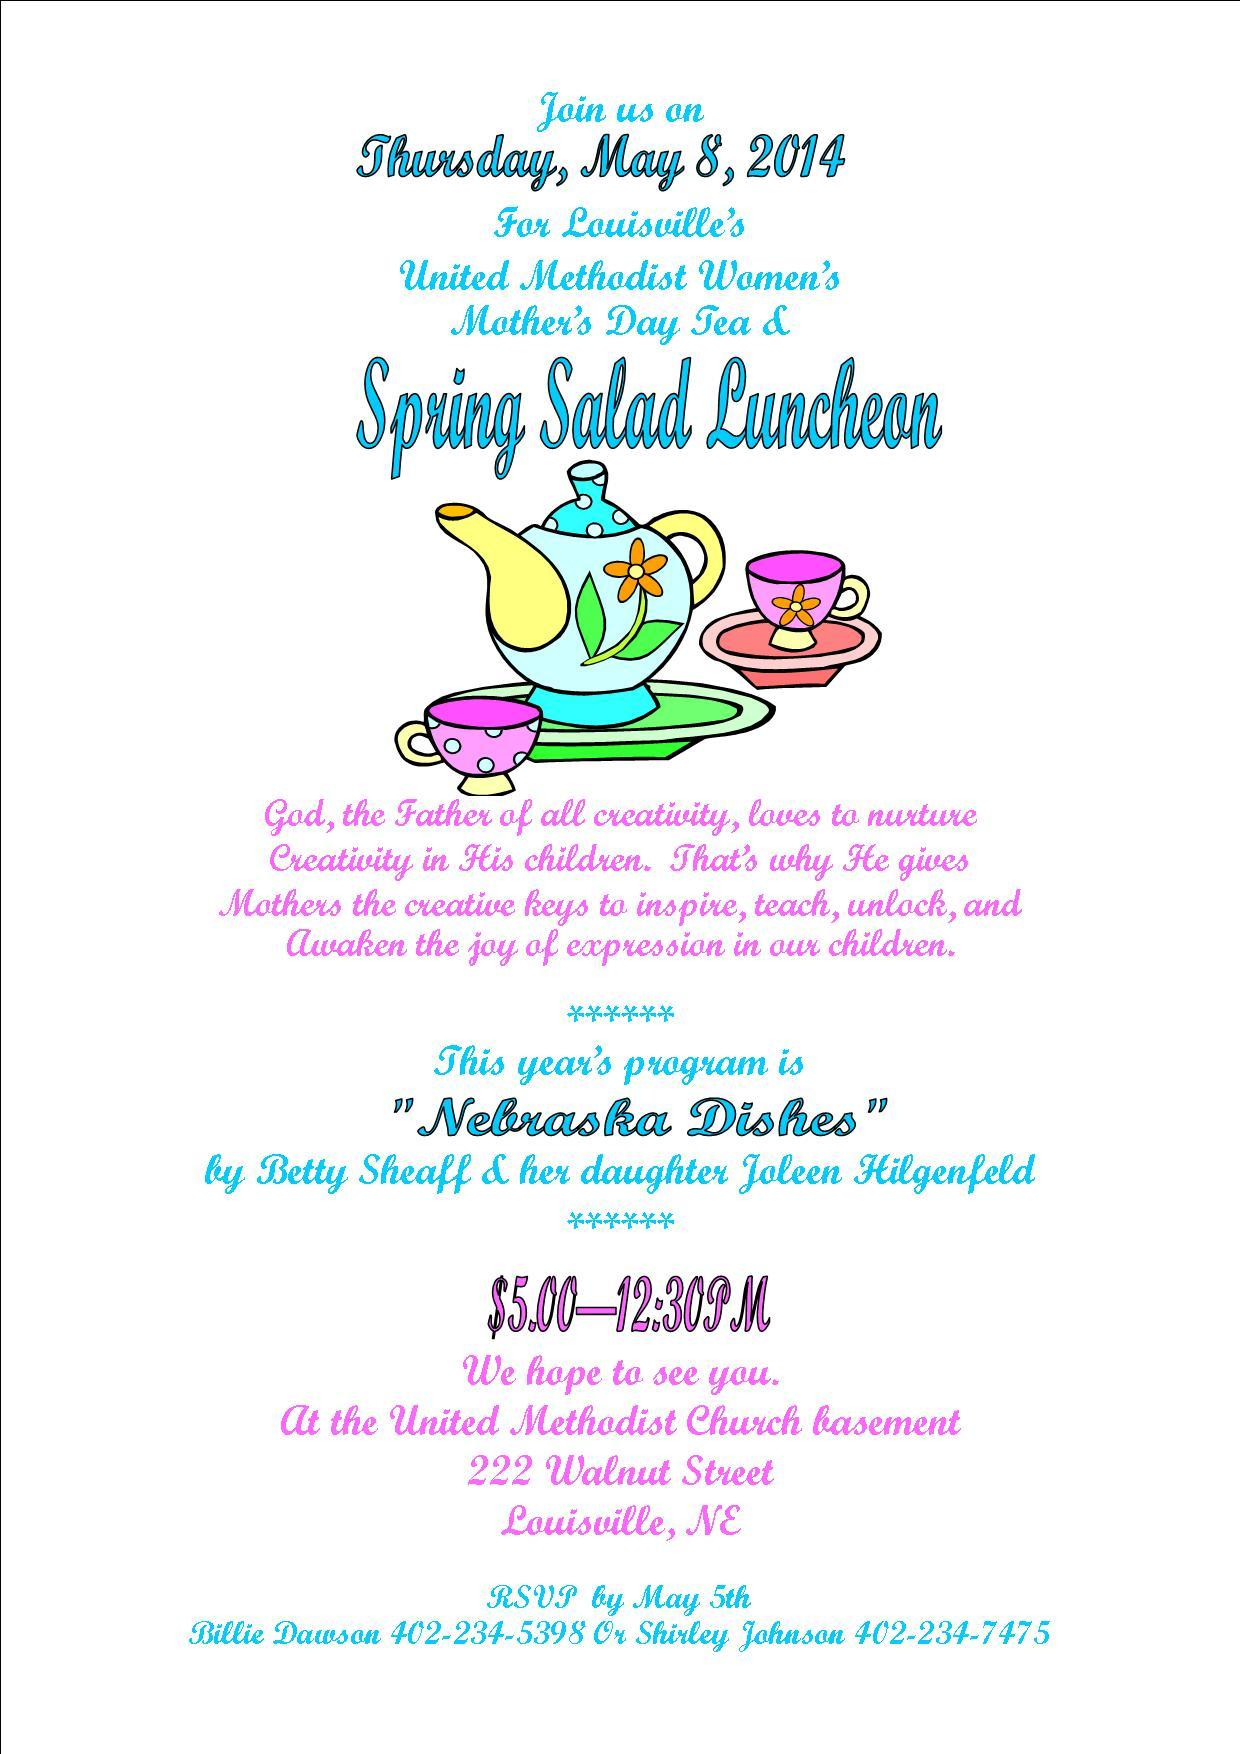 UMW Spring Salad Luncheon2